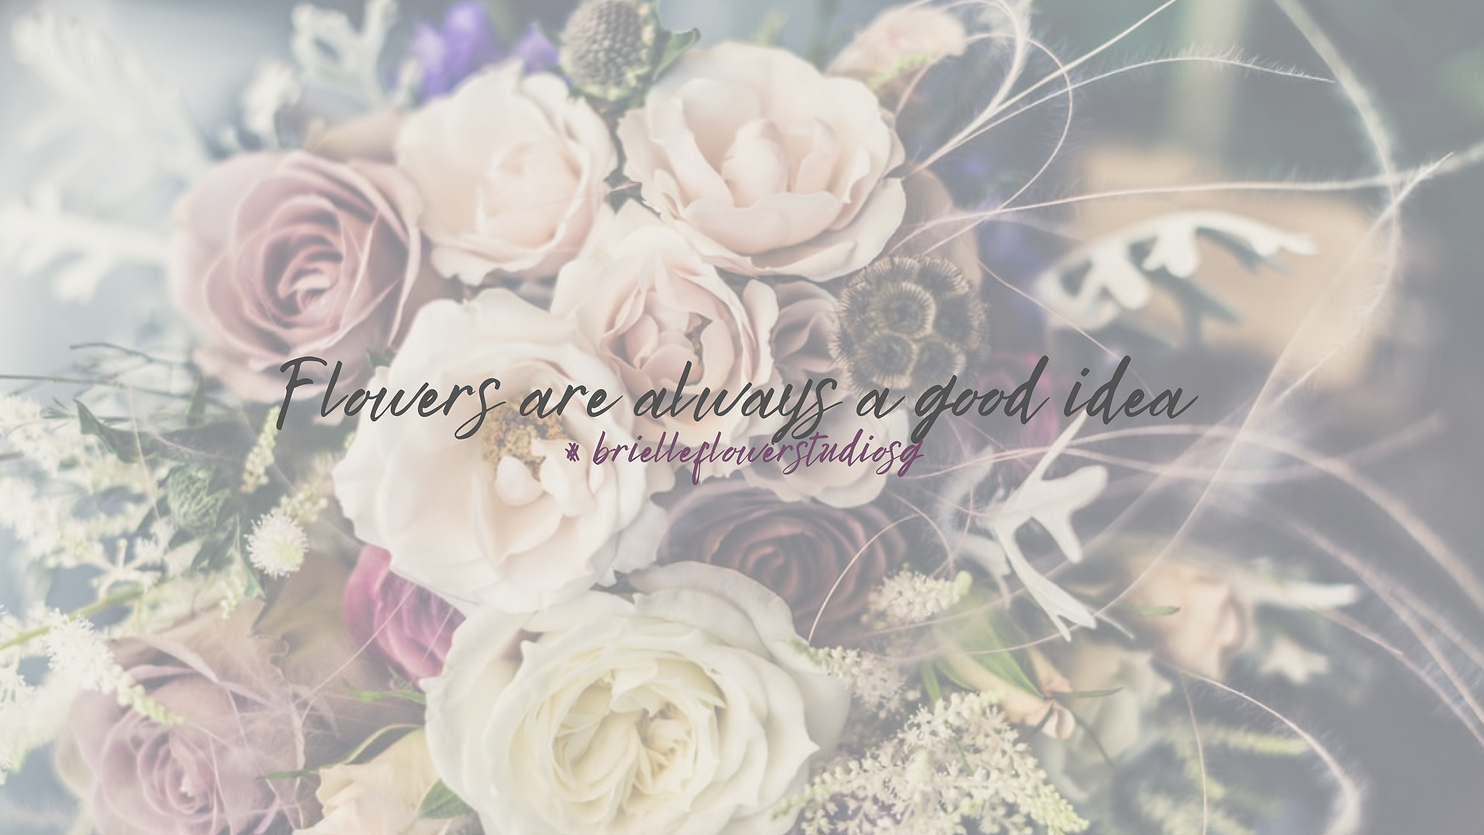 Flowers are always a good idea (3).png